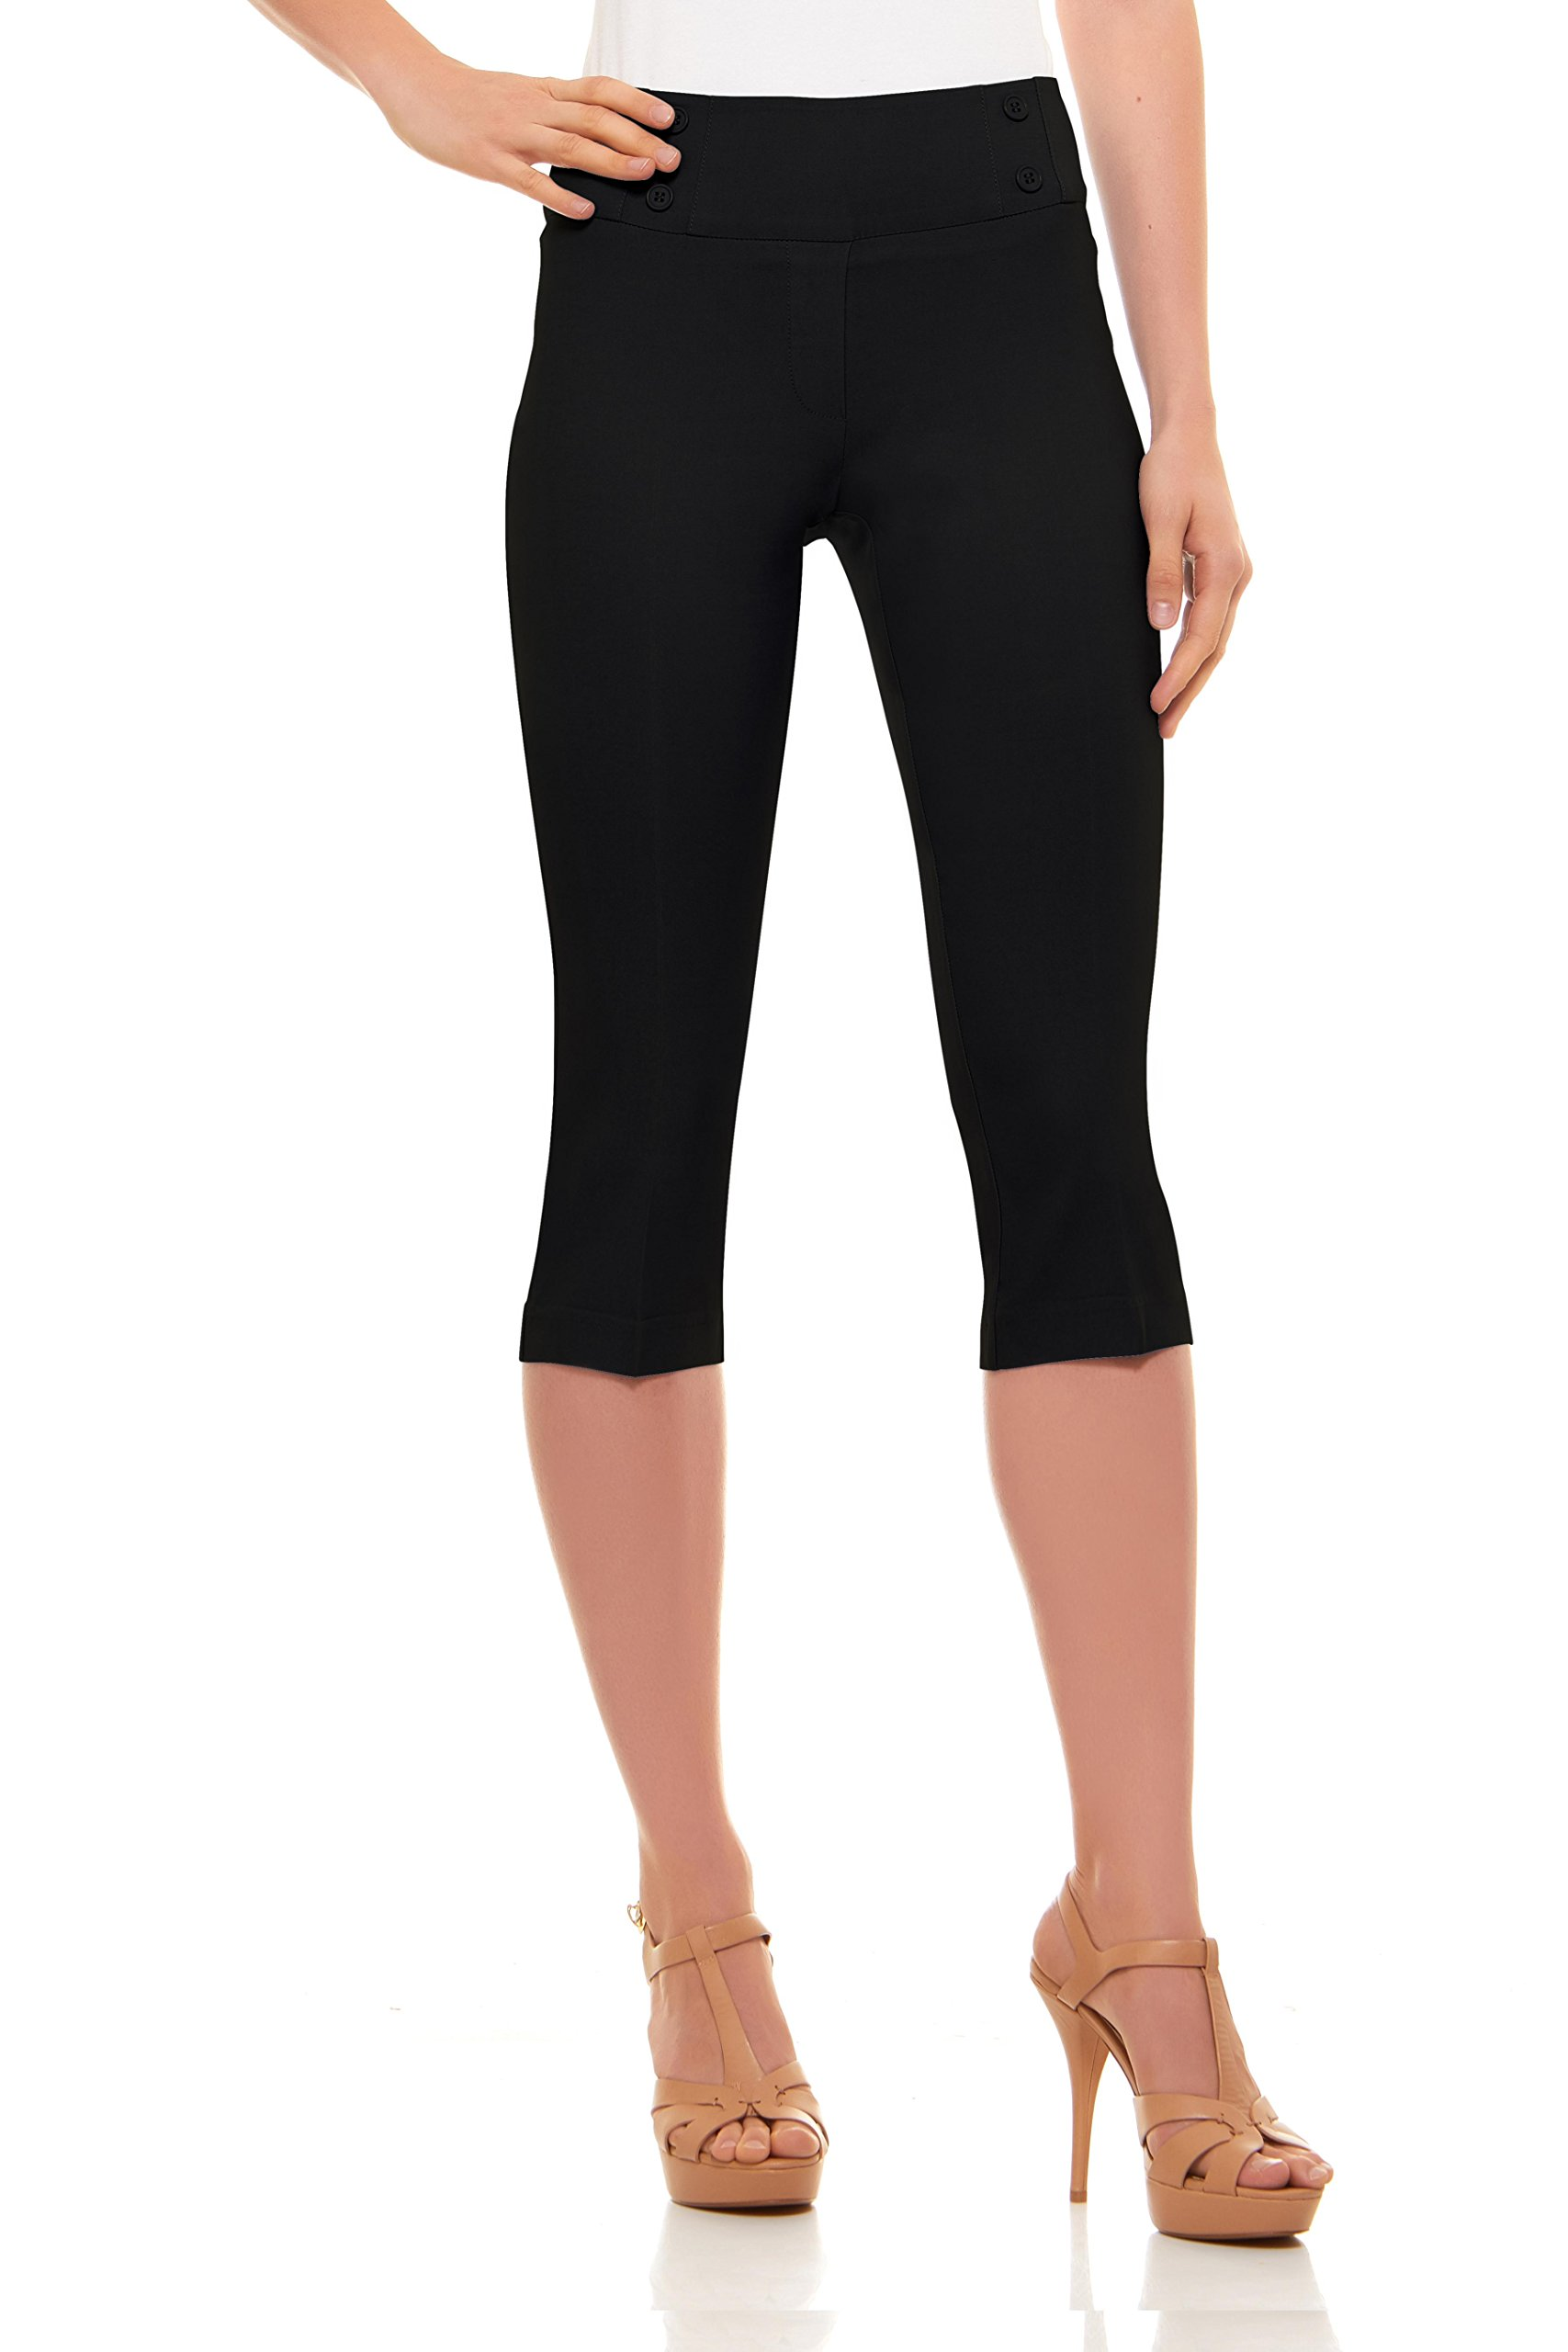 Womens Classic Fit Capri Pants-Pull On Style with Detailed Design, Velucci,Black,Small